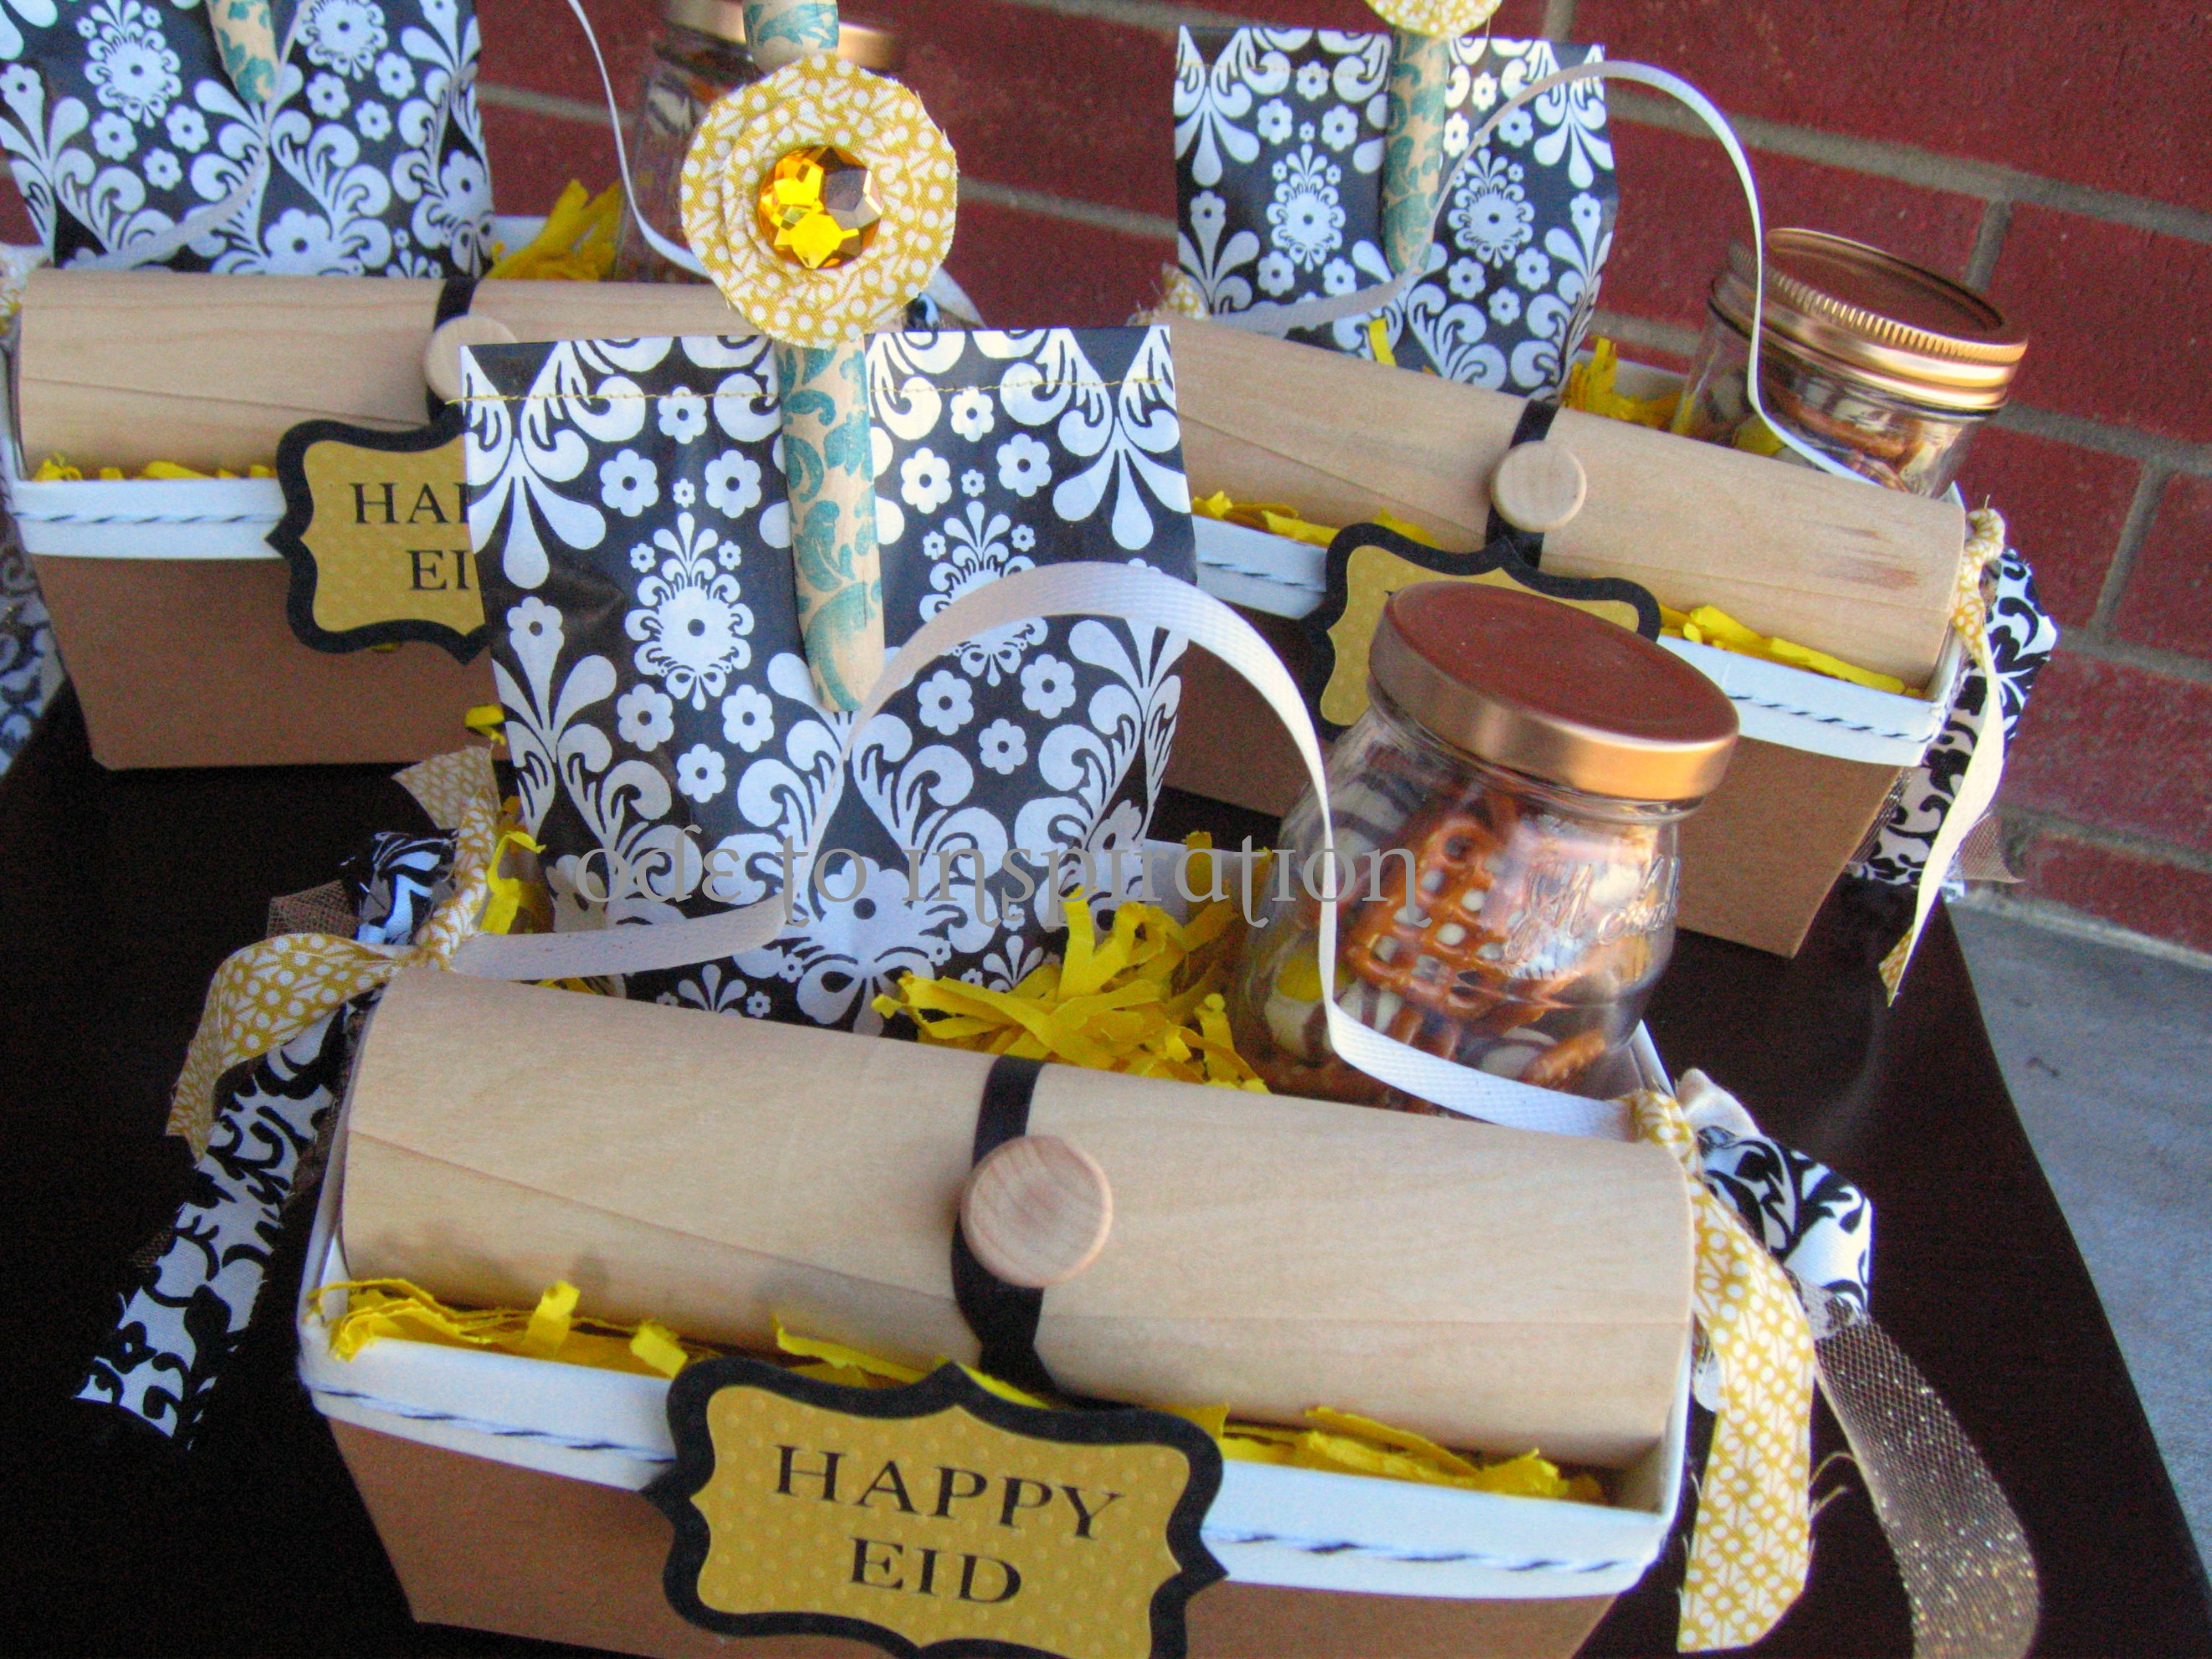 Eid al adha gift baskets ode to inspiration now allow me to share each of the components that make up the gift basket there is a story behind each item and how it came about but to share would mean negle Choice Image